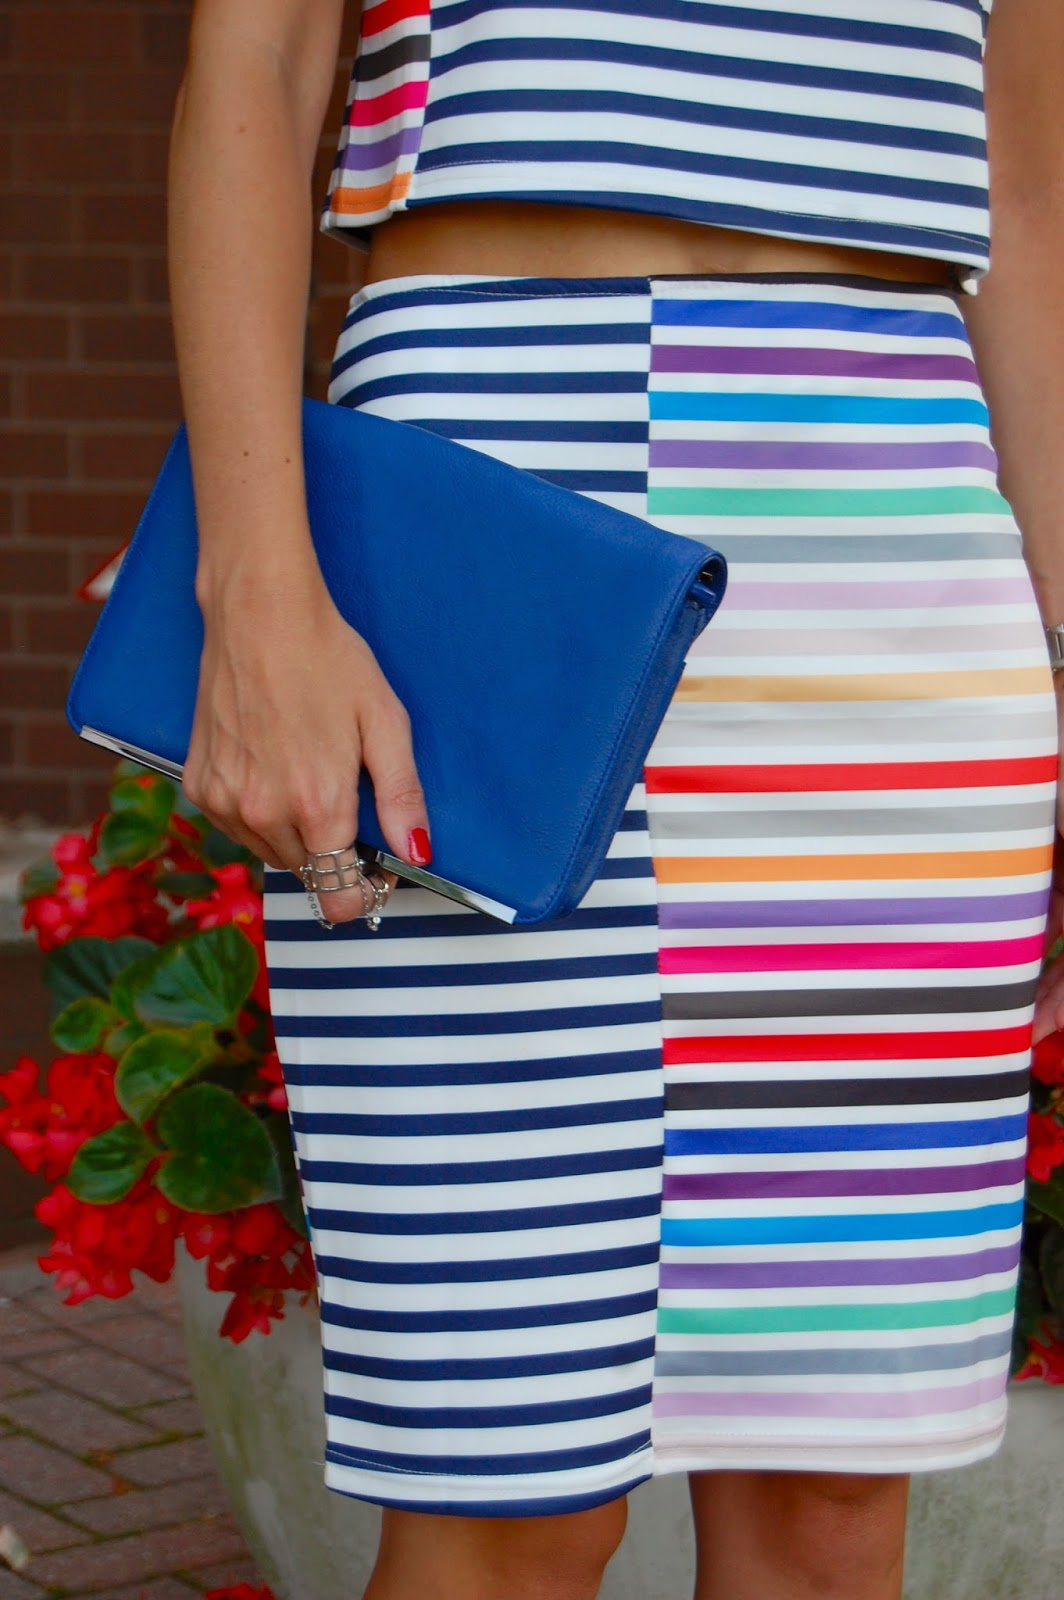 Wearing Sheinside Blue White Striped Short Sleeve Top With Bodycon Skirt, Mulit colored striped crop top and matching pencil skirt, Nordstrom anniversary sale 2014 Halogen fold over cross body clutch, Forever21 clear sunglasses